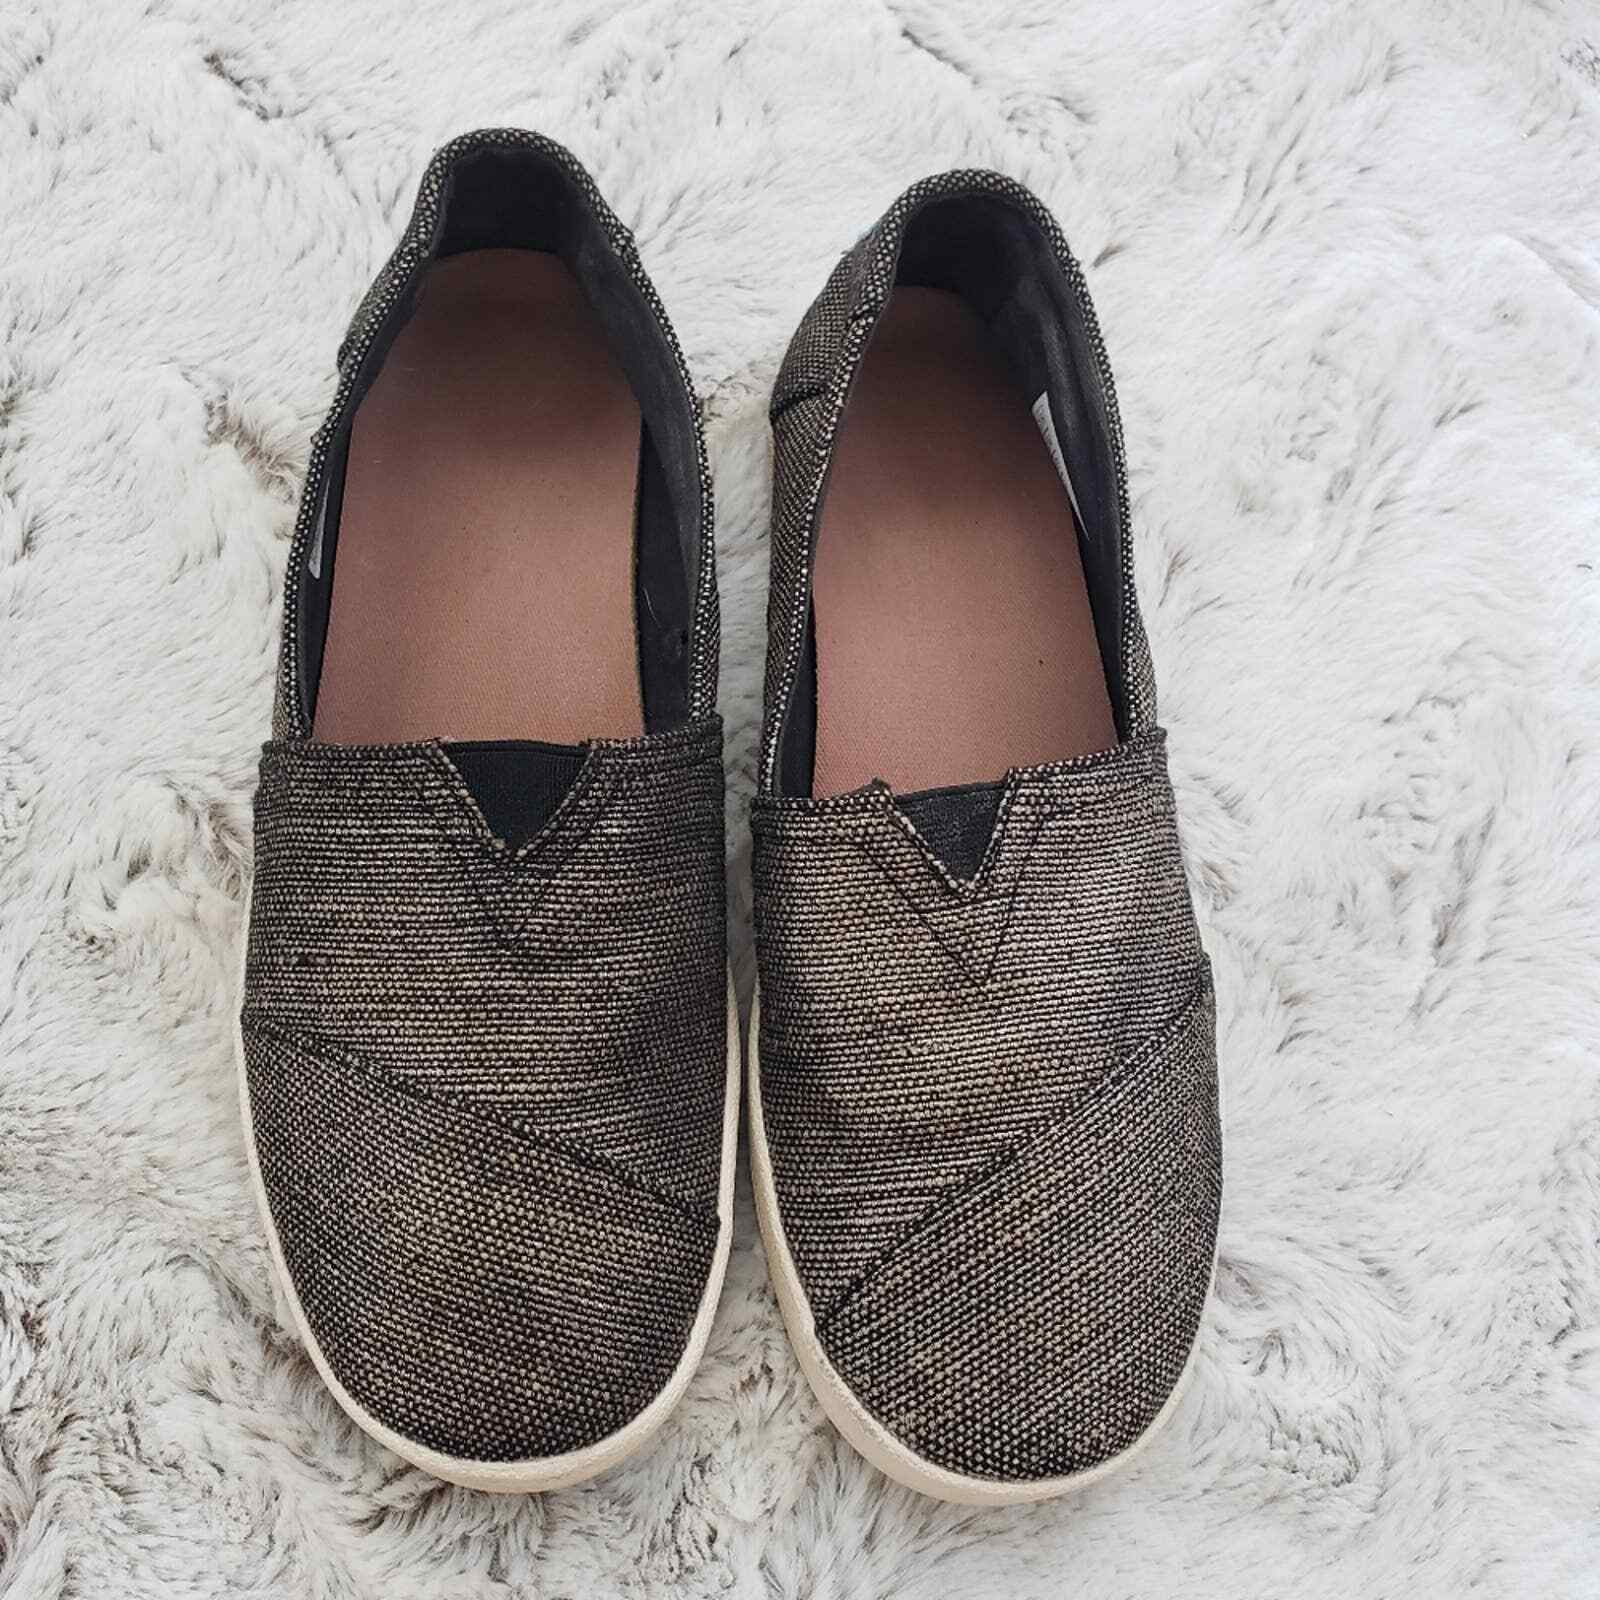 TOMS WOMENS AVALON SLIP ON SHOES SIZE 7.5